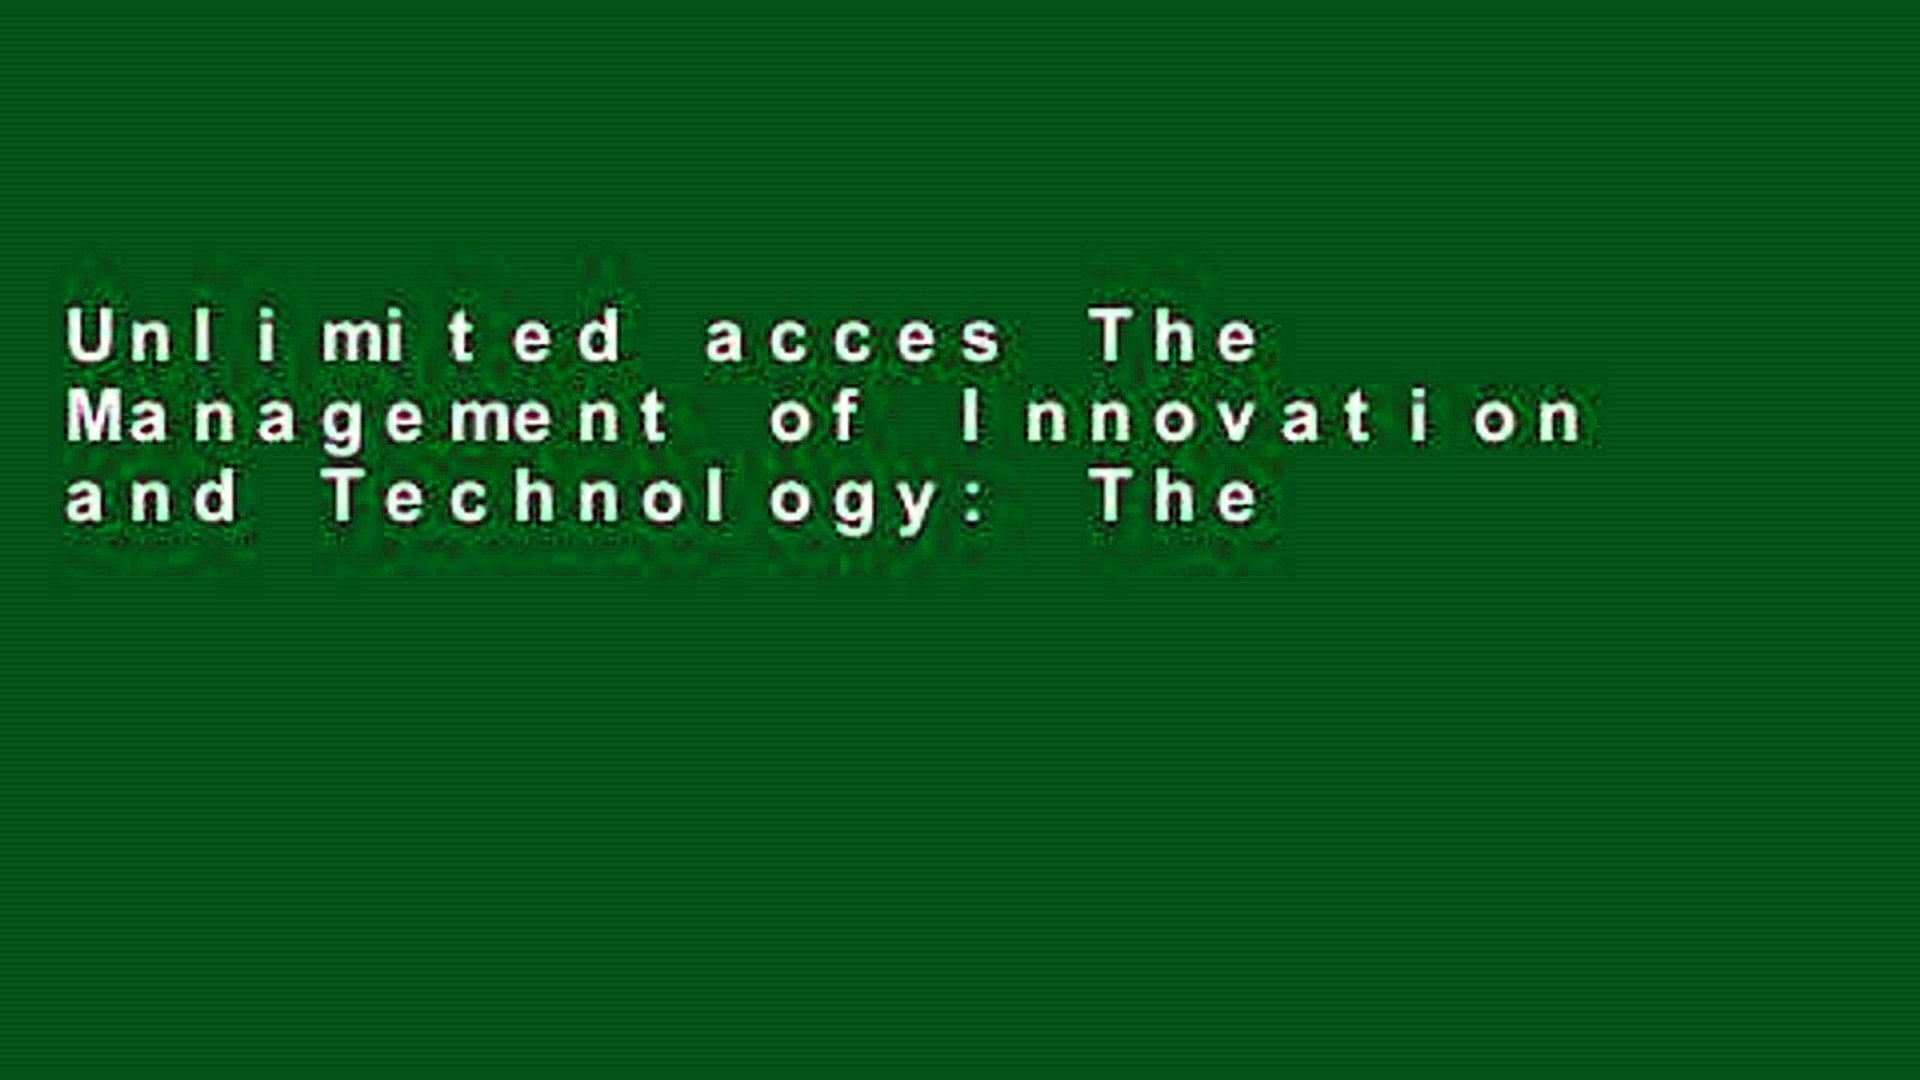 Unlimited acces The Management of Innovation and Technology: The Shaping of Technology and